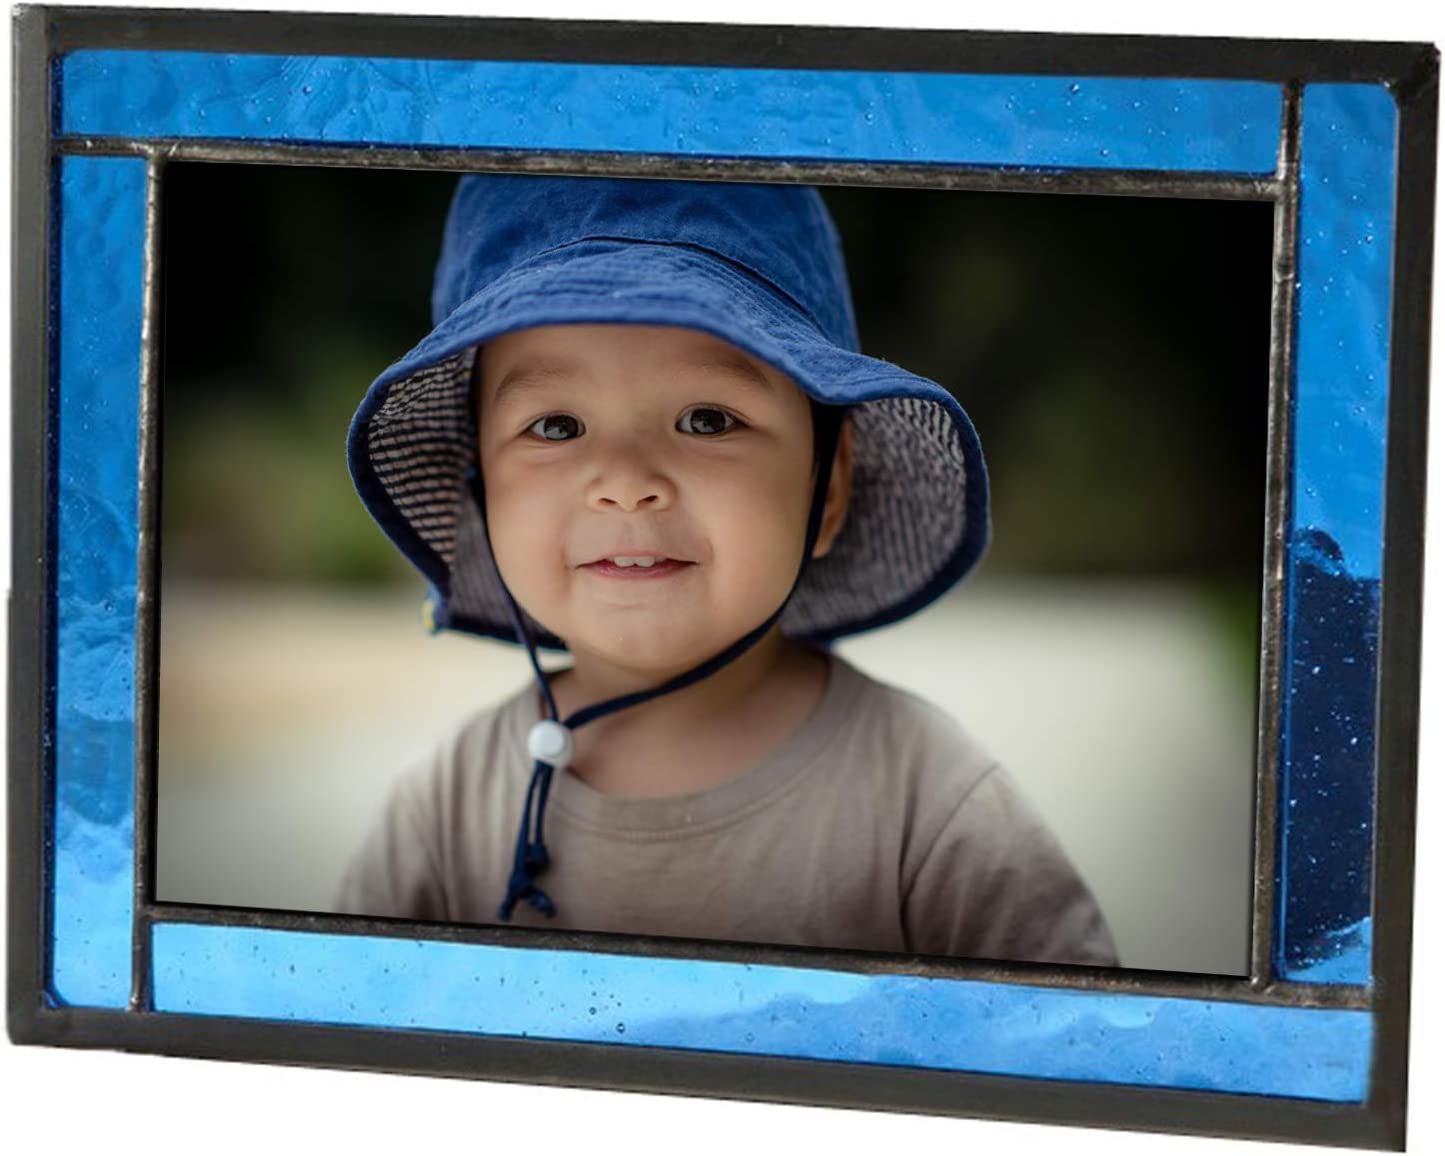 Blue Picture Frame Stained Glass Easel Back 4x6 Photo Display Horizontal Vertical Home Decor Graduation Gift for Women or Men Family Vacation J Devlin Pic 324-46HV